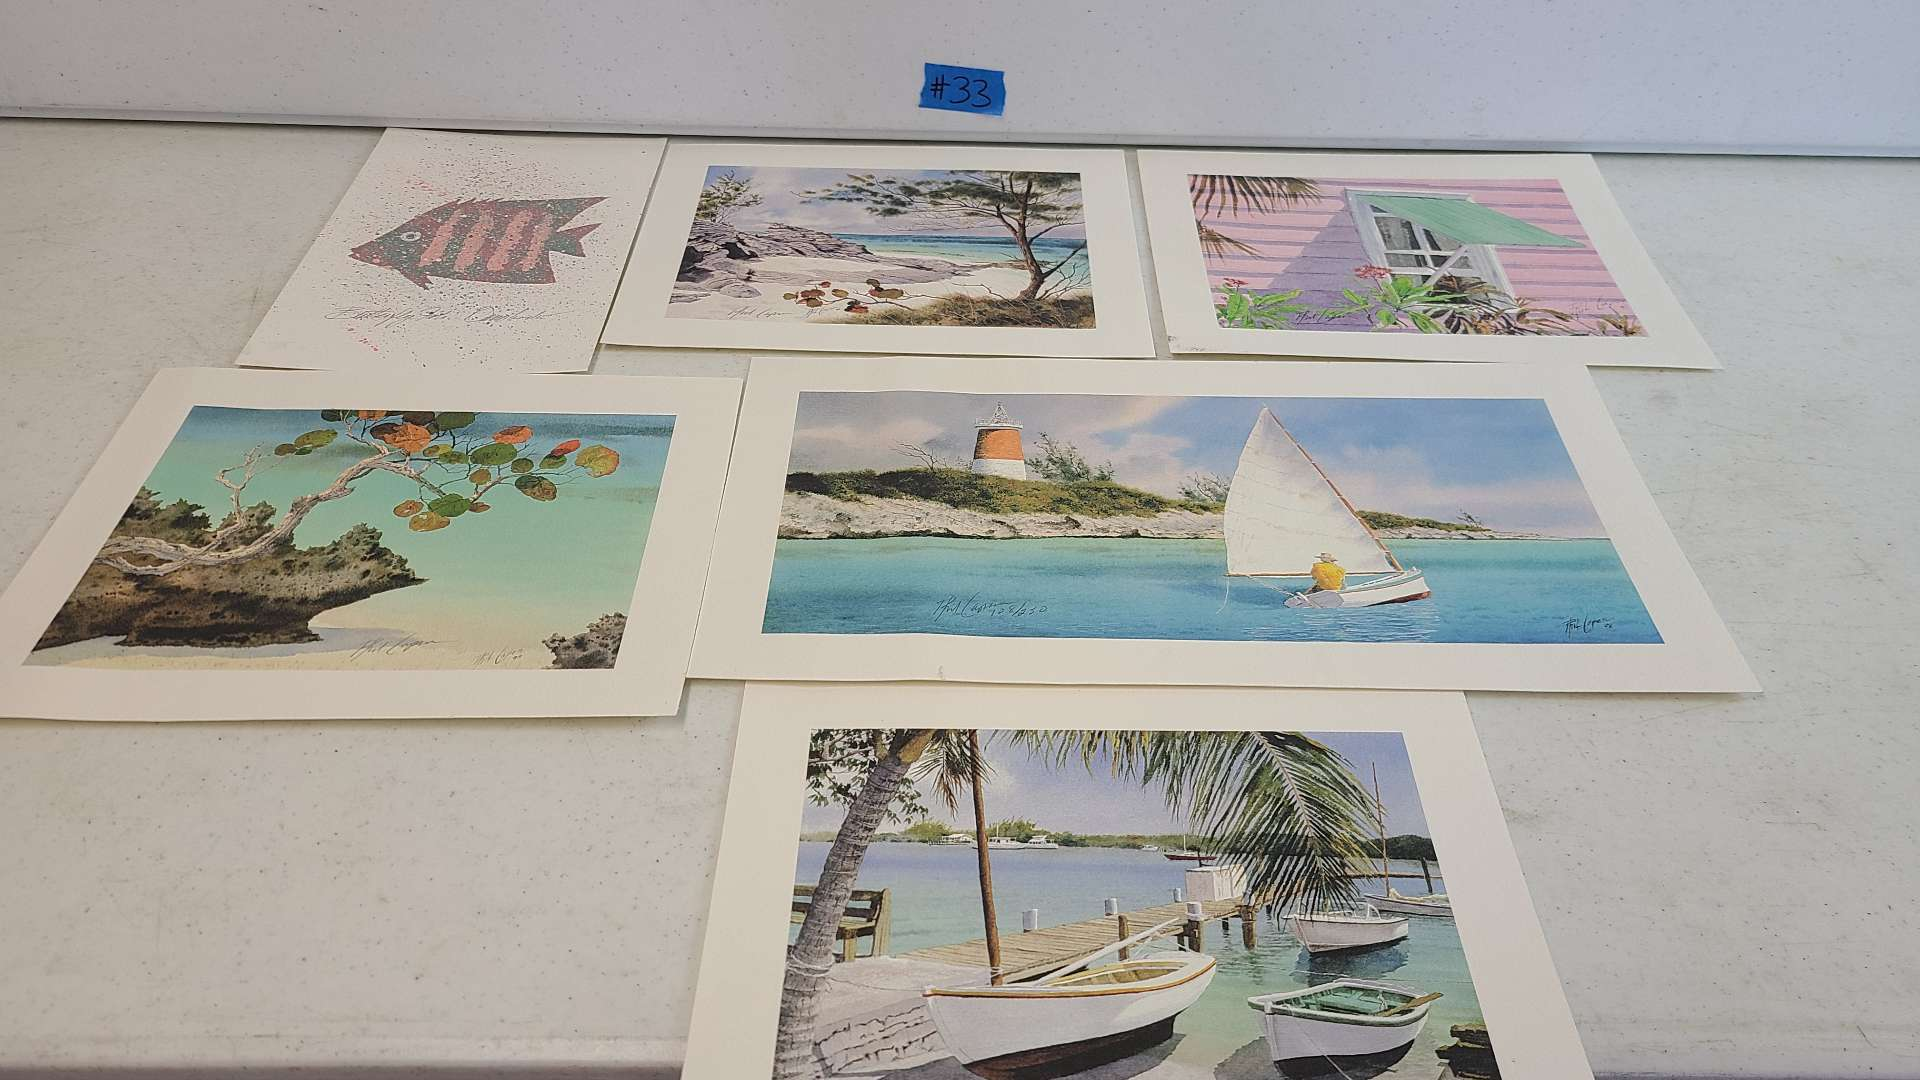 Lot # 33 Lot of 6 Ocean & Seaside Themed Signed Lithographs